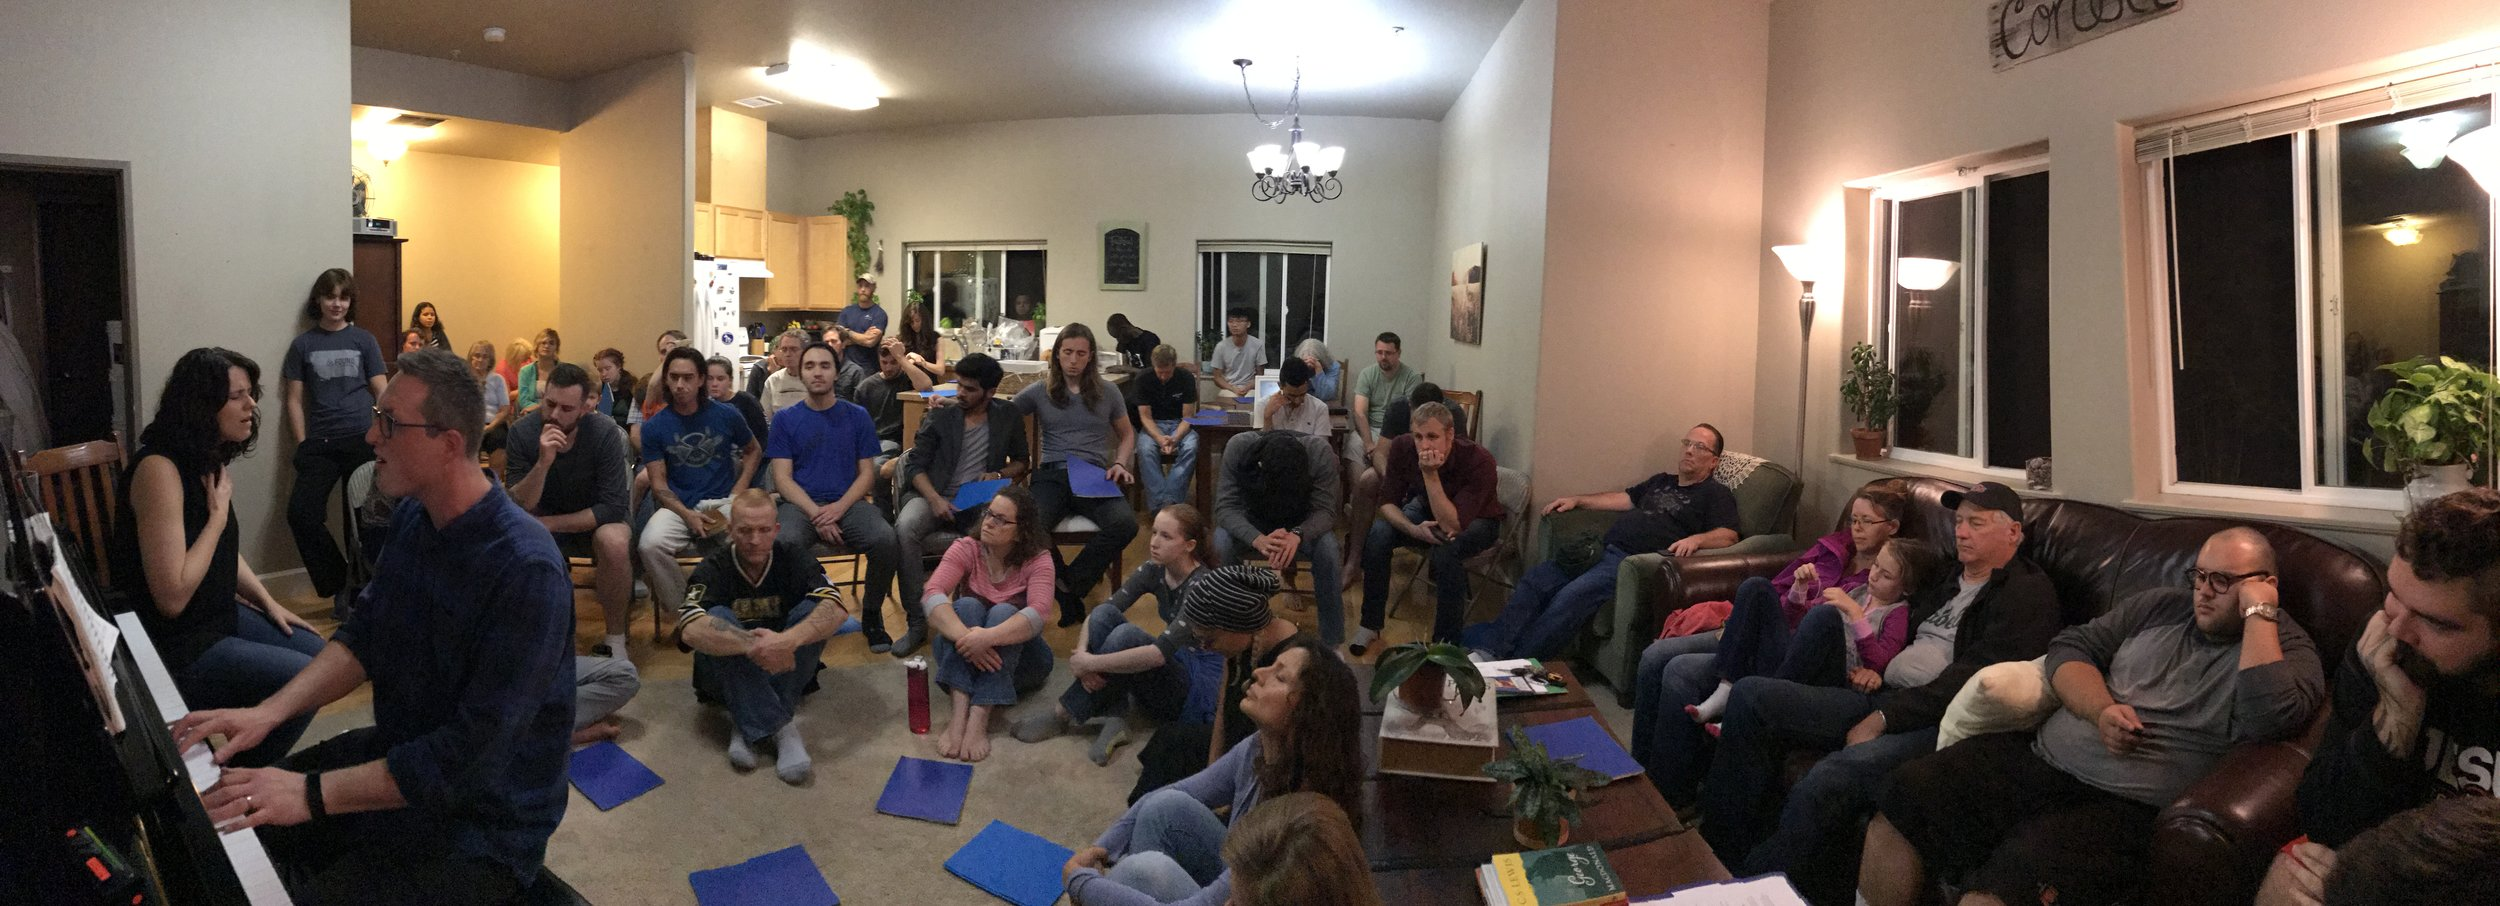 House Concert at ARISE / Light Bearers campus in USA